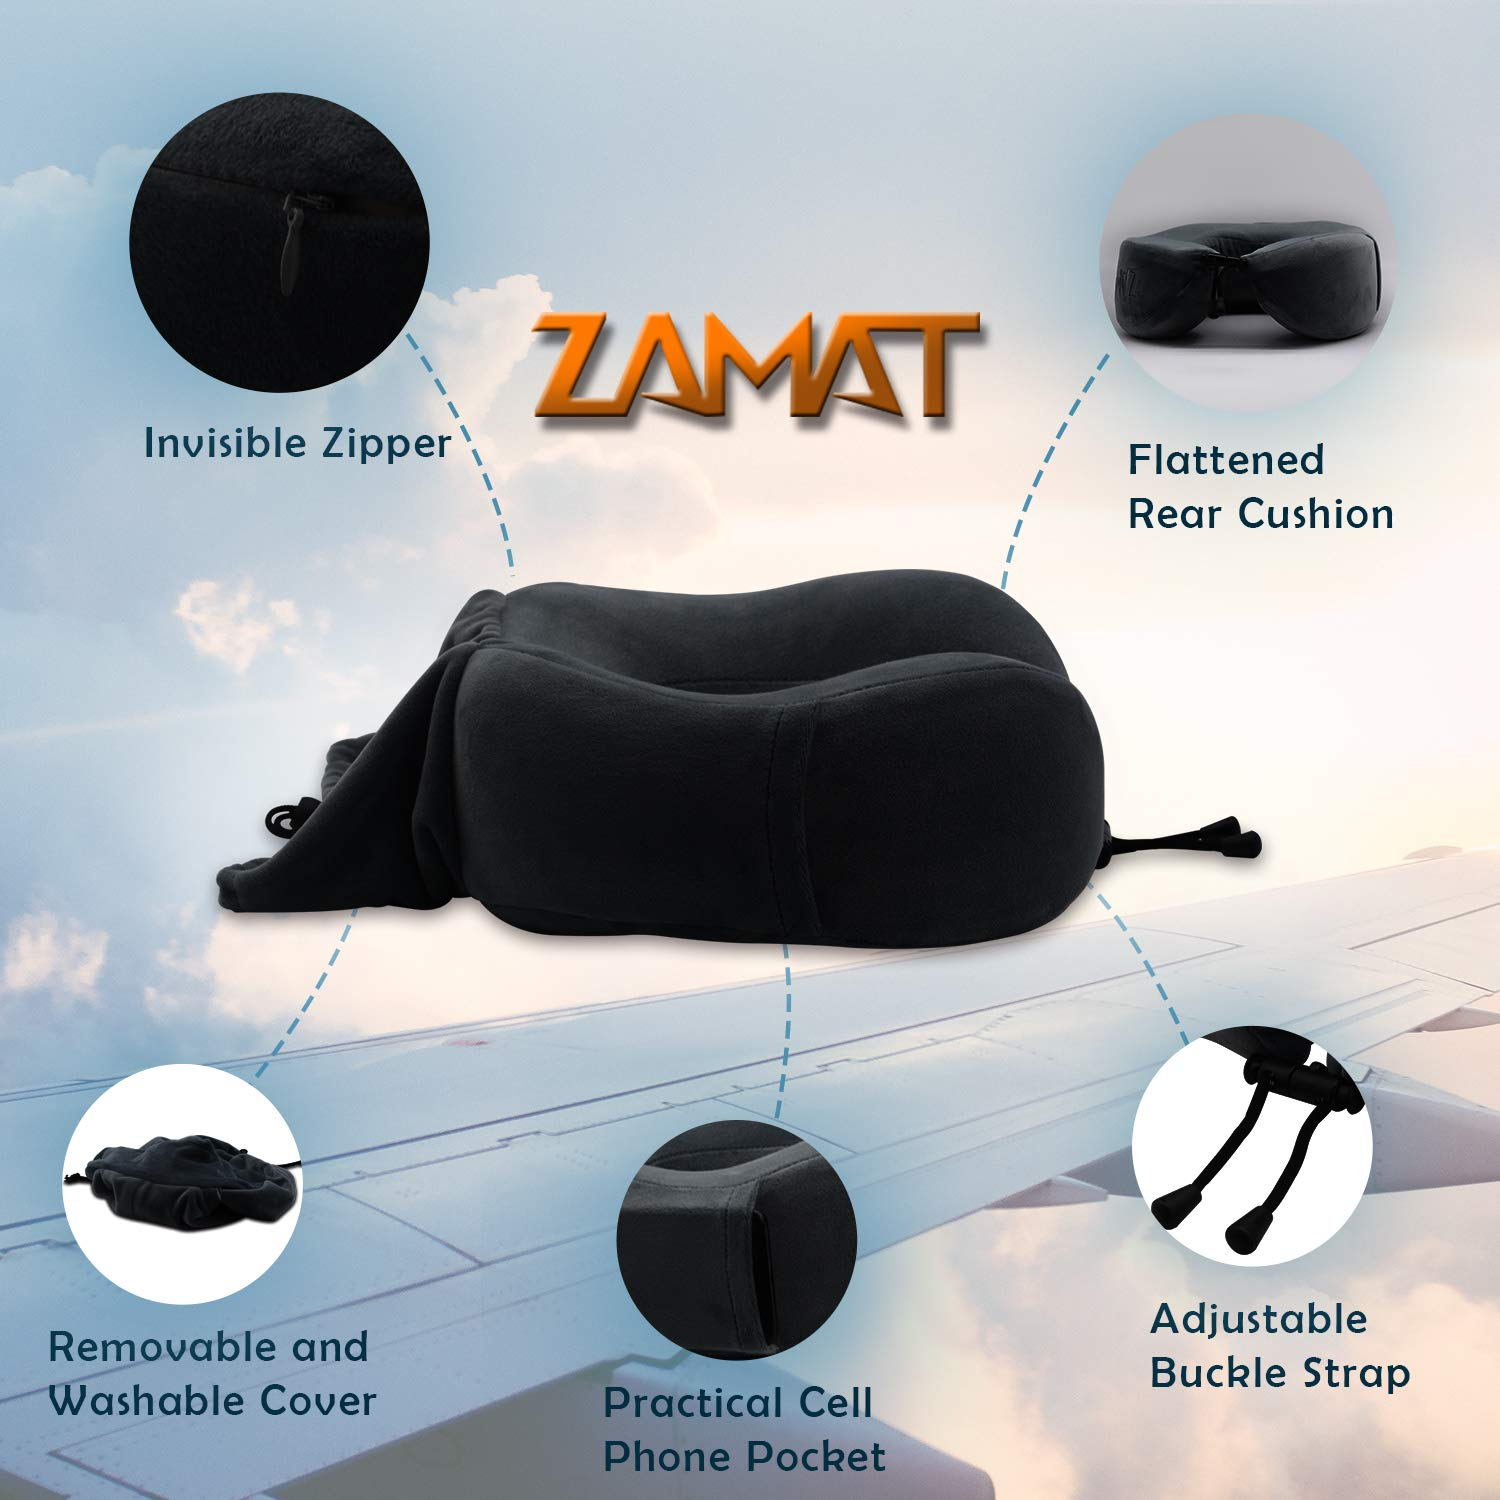 360/° Stable Neck Support Airplane Pillow with Soft Velour Cover Adjustable Travel Neck Pillow for Airplane Travel Portable Bag Blue ZAMAT Breathable /& Comfortable Memory Foam Travel Pillow